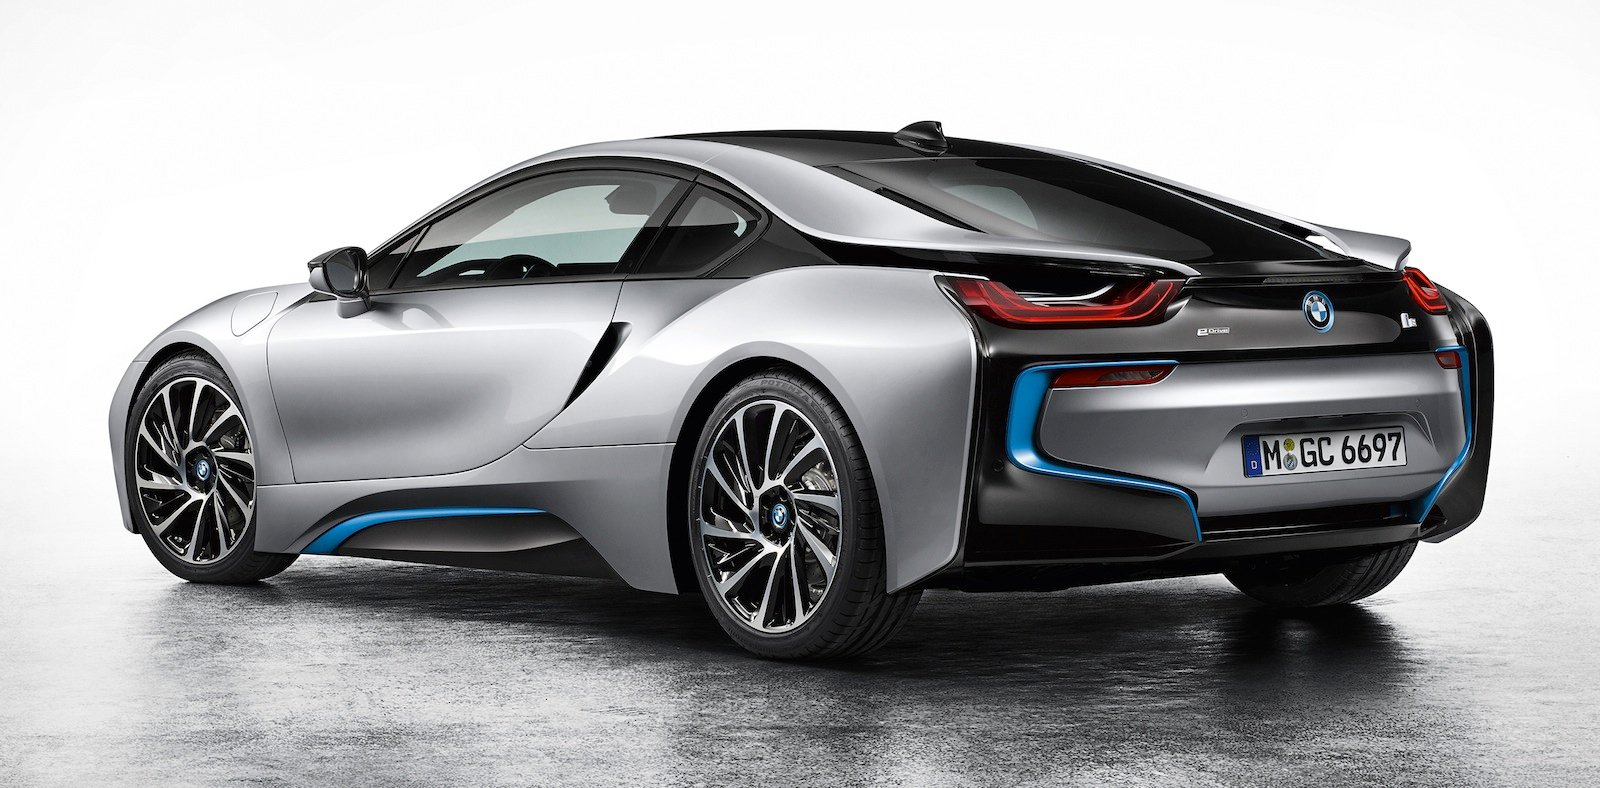 Bmw I8 570nm Hybrid Supercar Coming To Oz Photos